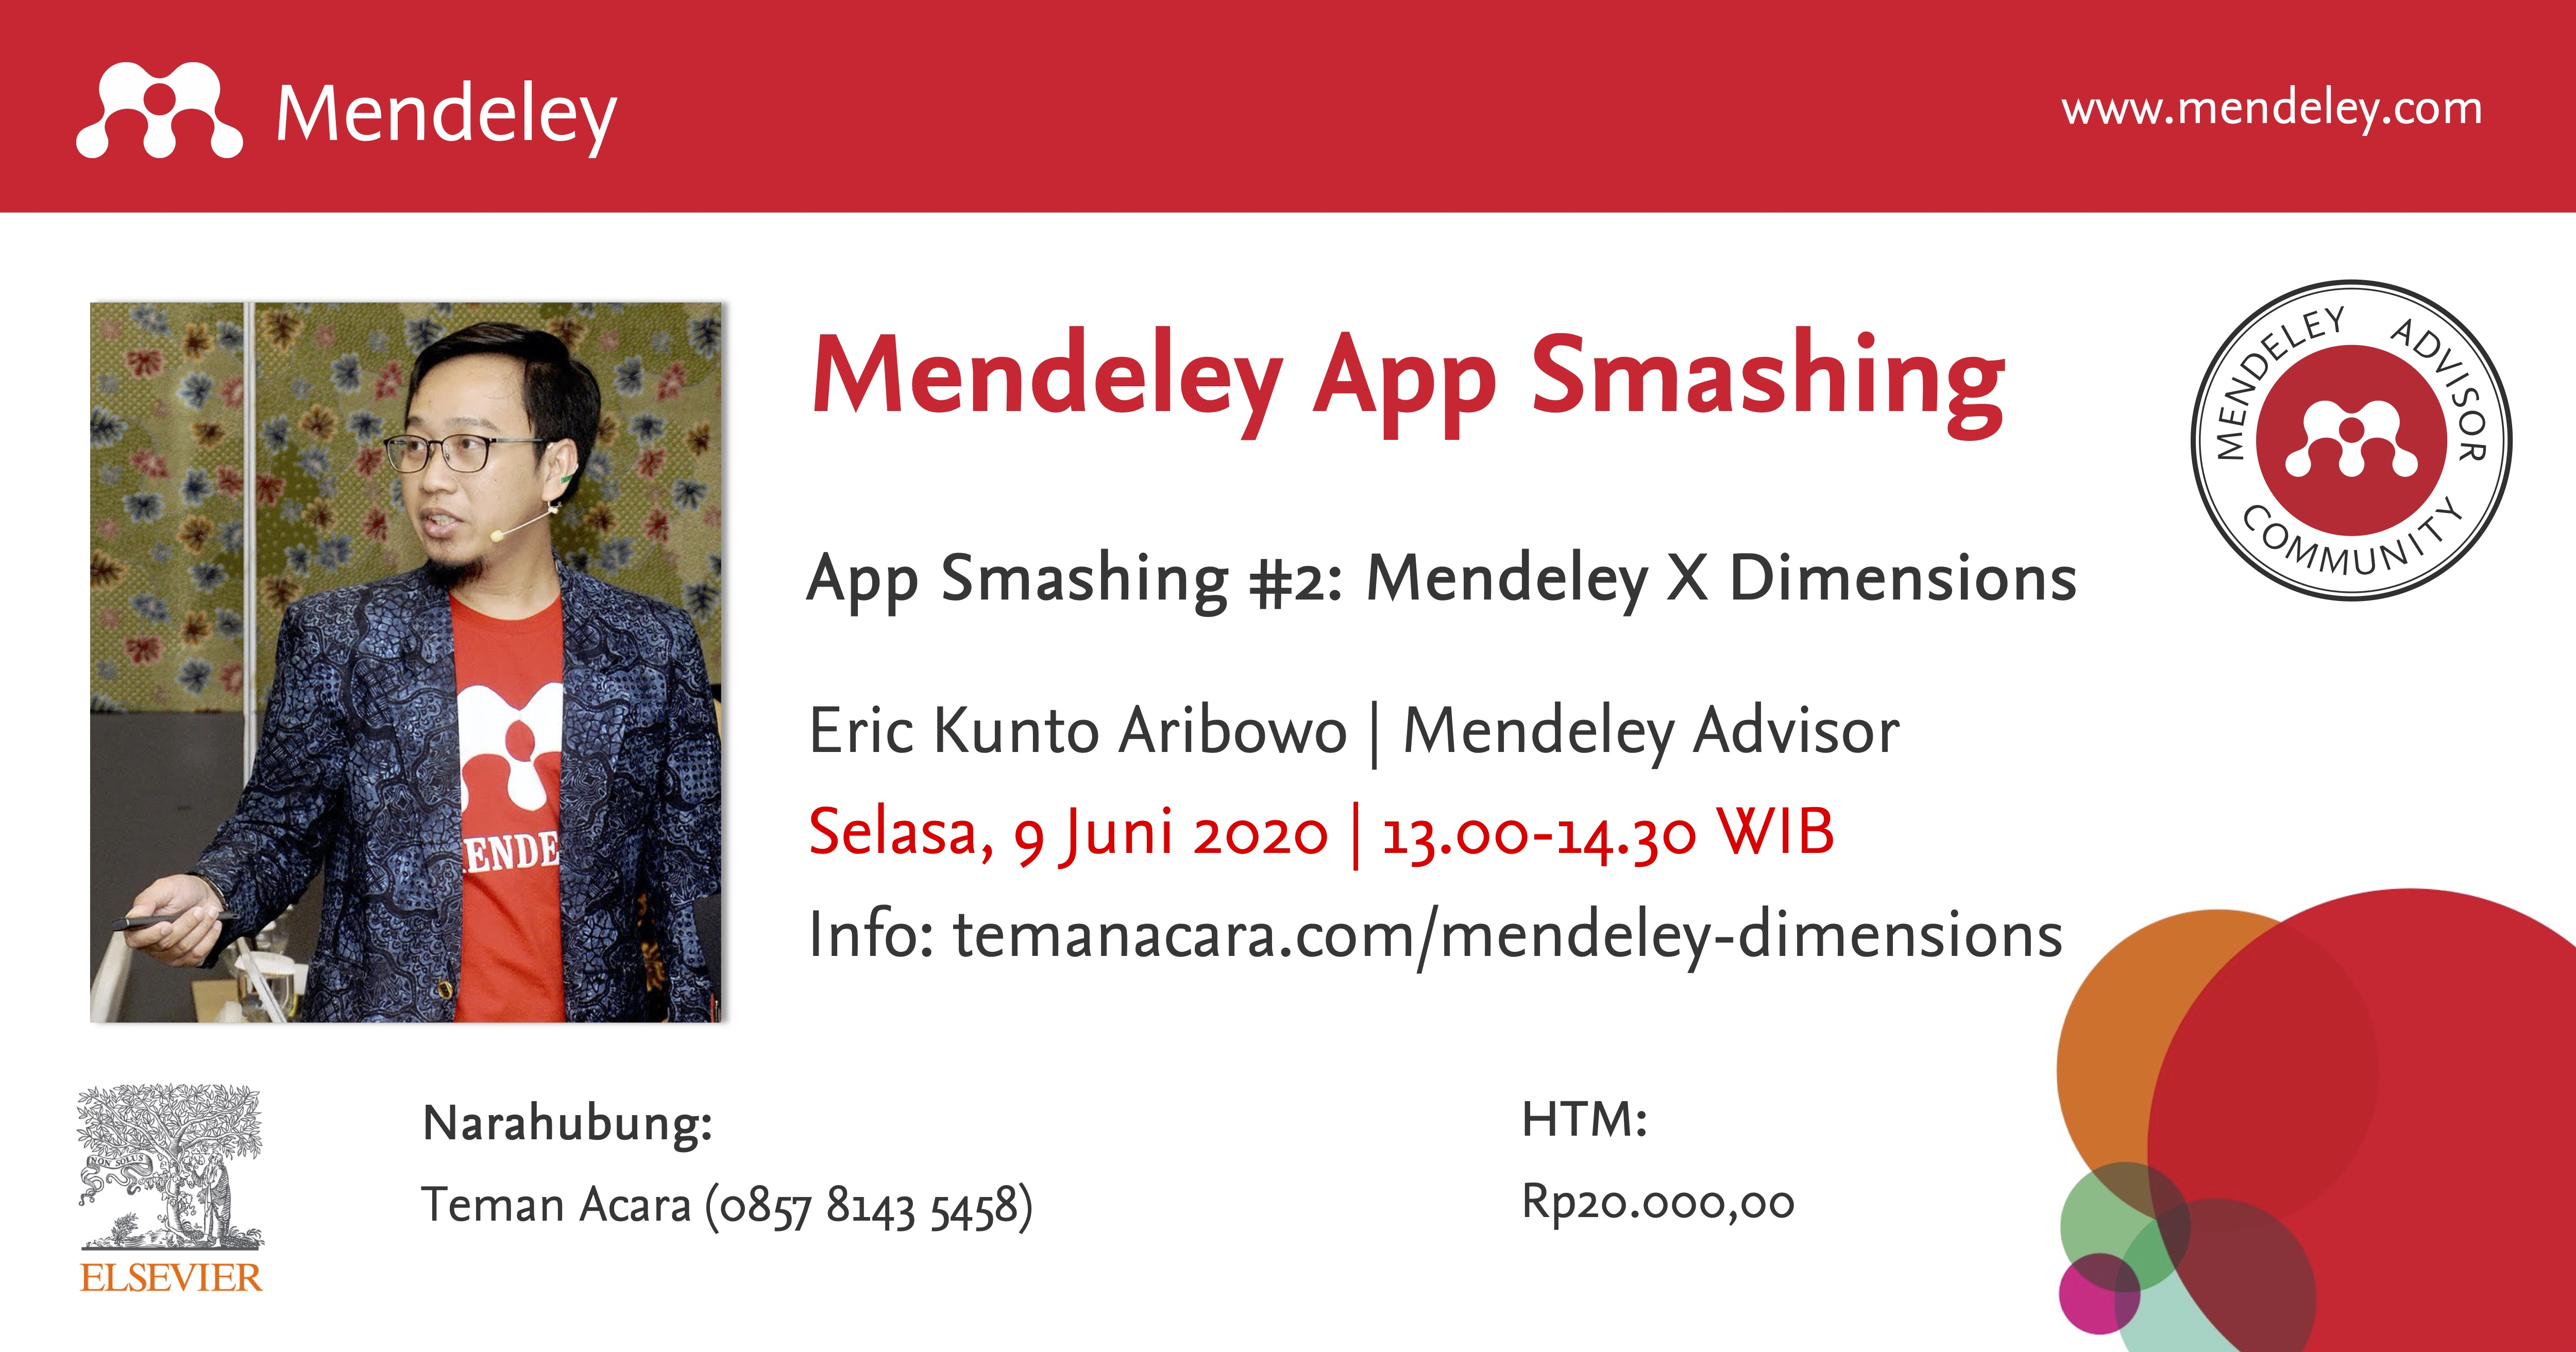 App Smashing #2: Mendeley X Dimensions